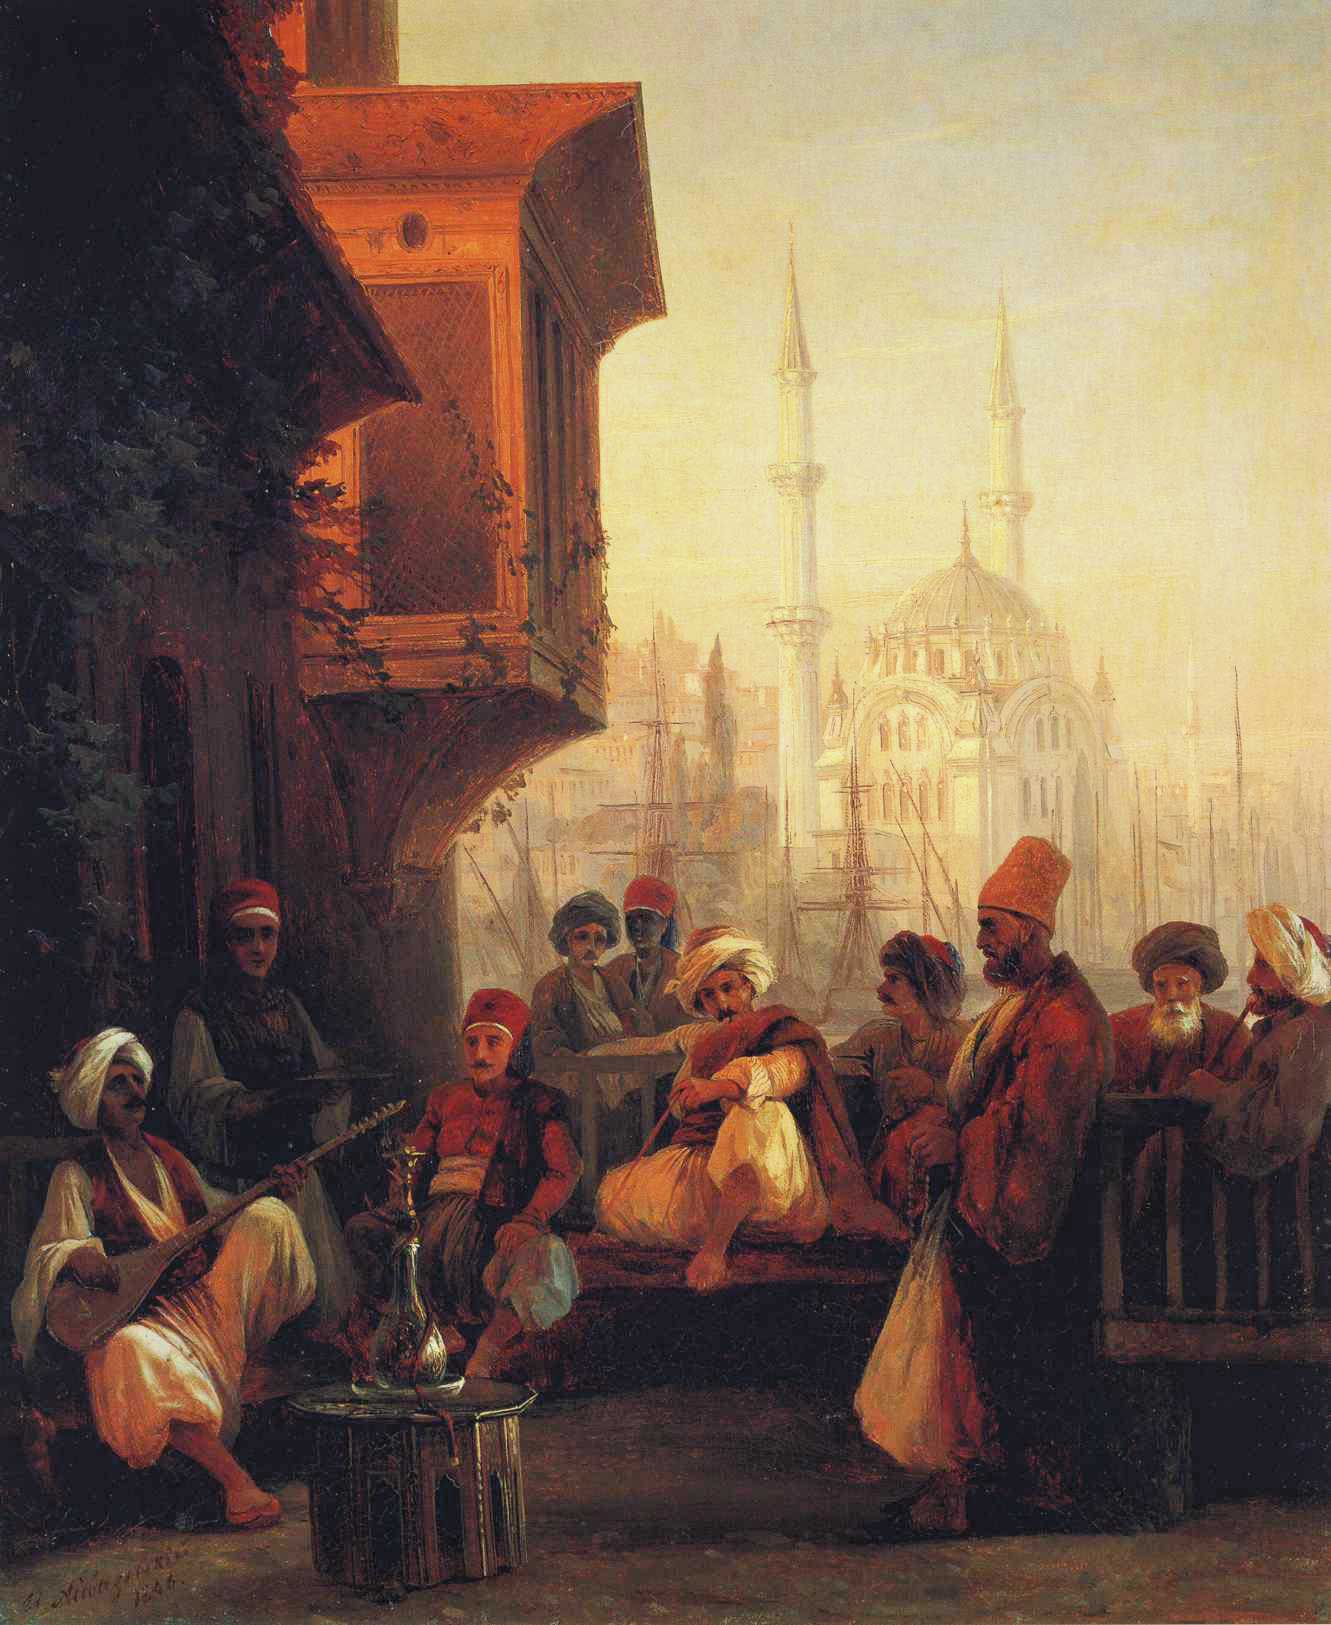 Coffee-house by the Ortakoy Mosque in Constantinople :: Ivan Constantinovich Aivazovsky - scenes of Oriental life (Orientalism) in art and painting ôîòî